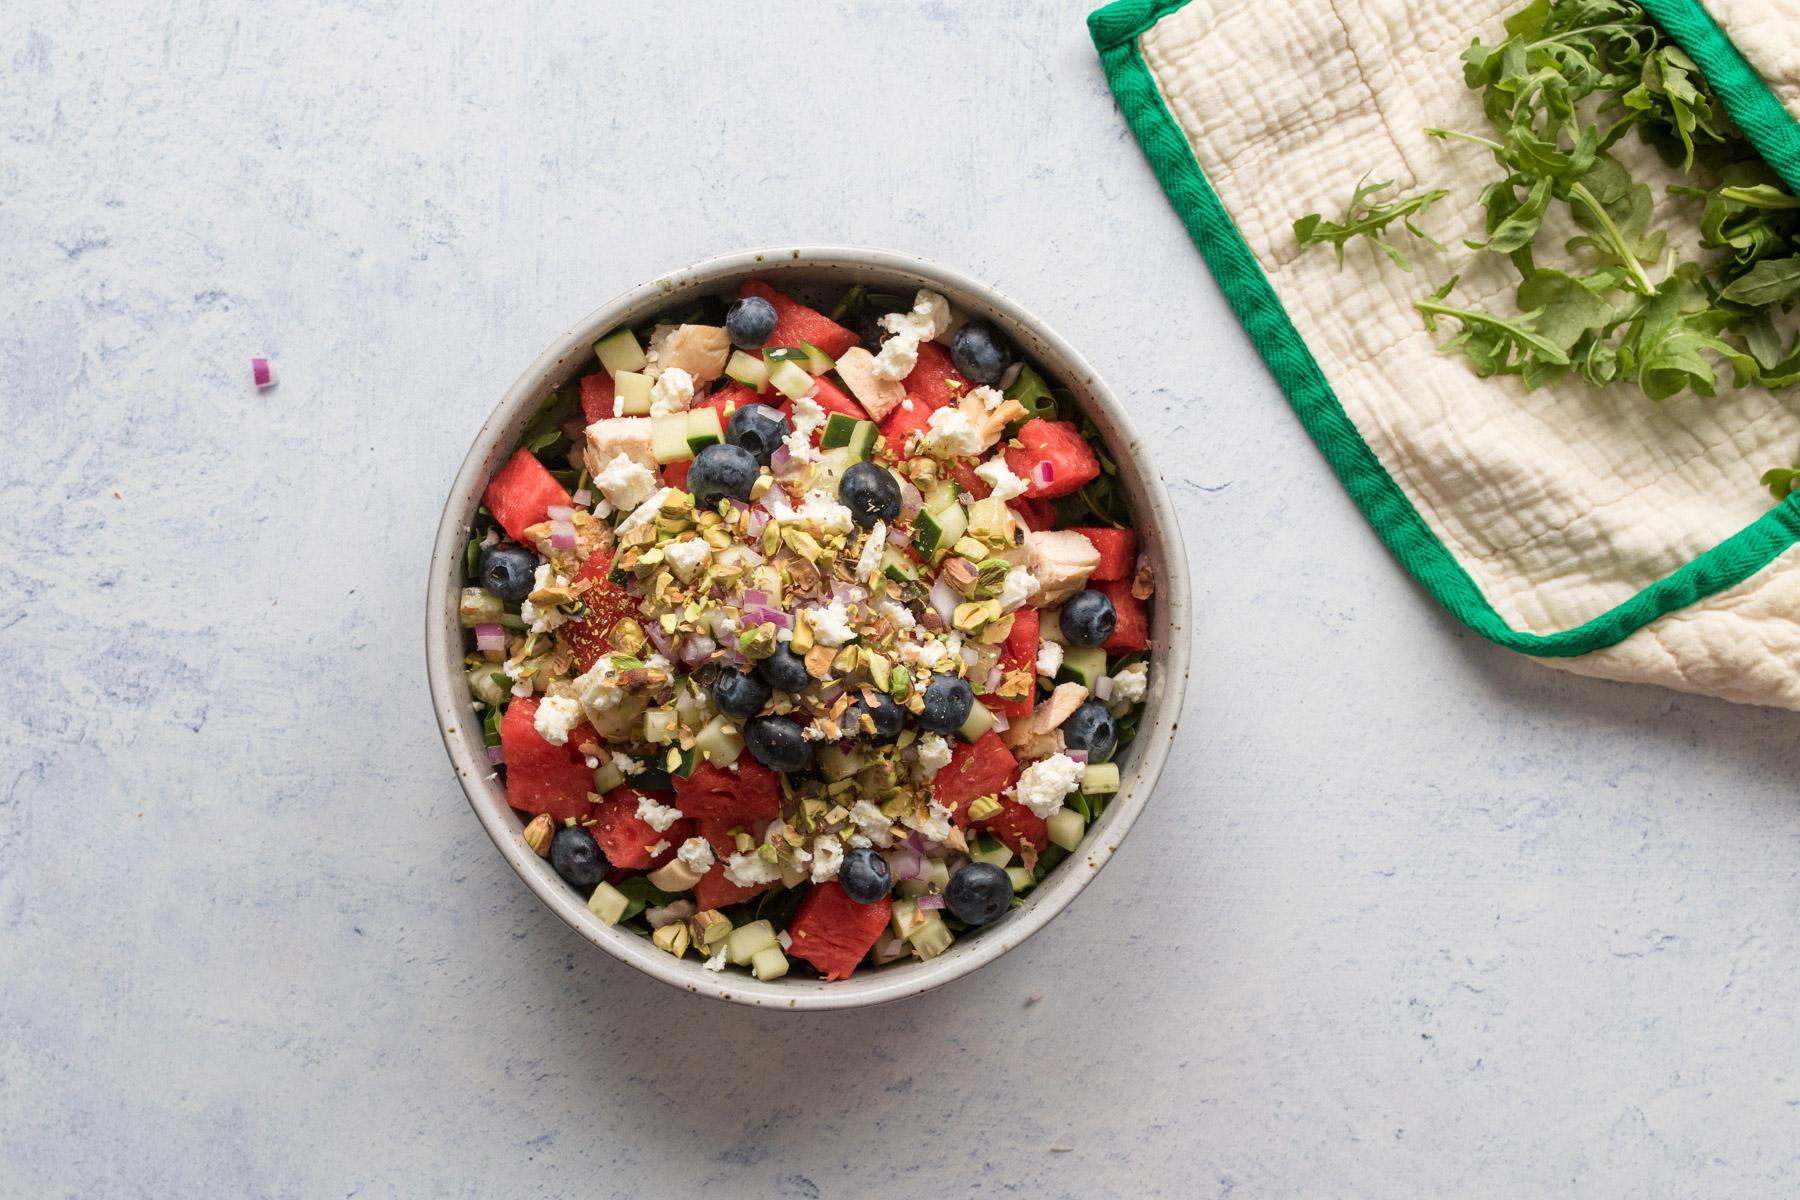 bowl of watermelon, feta, blueberries and other salad ingredients